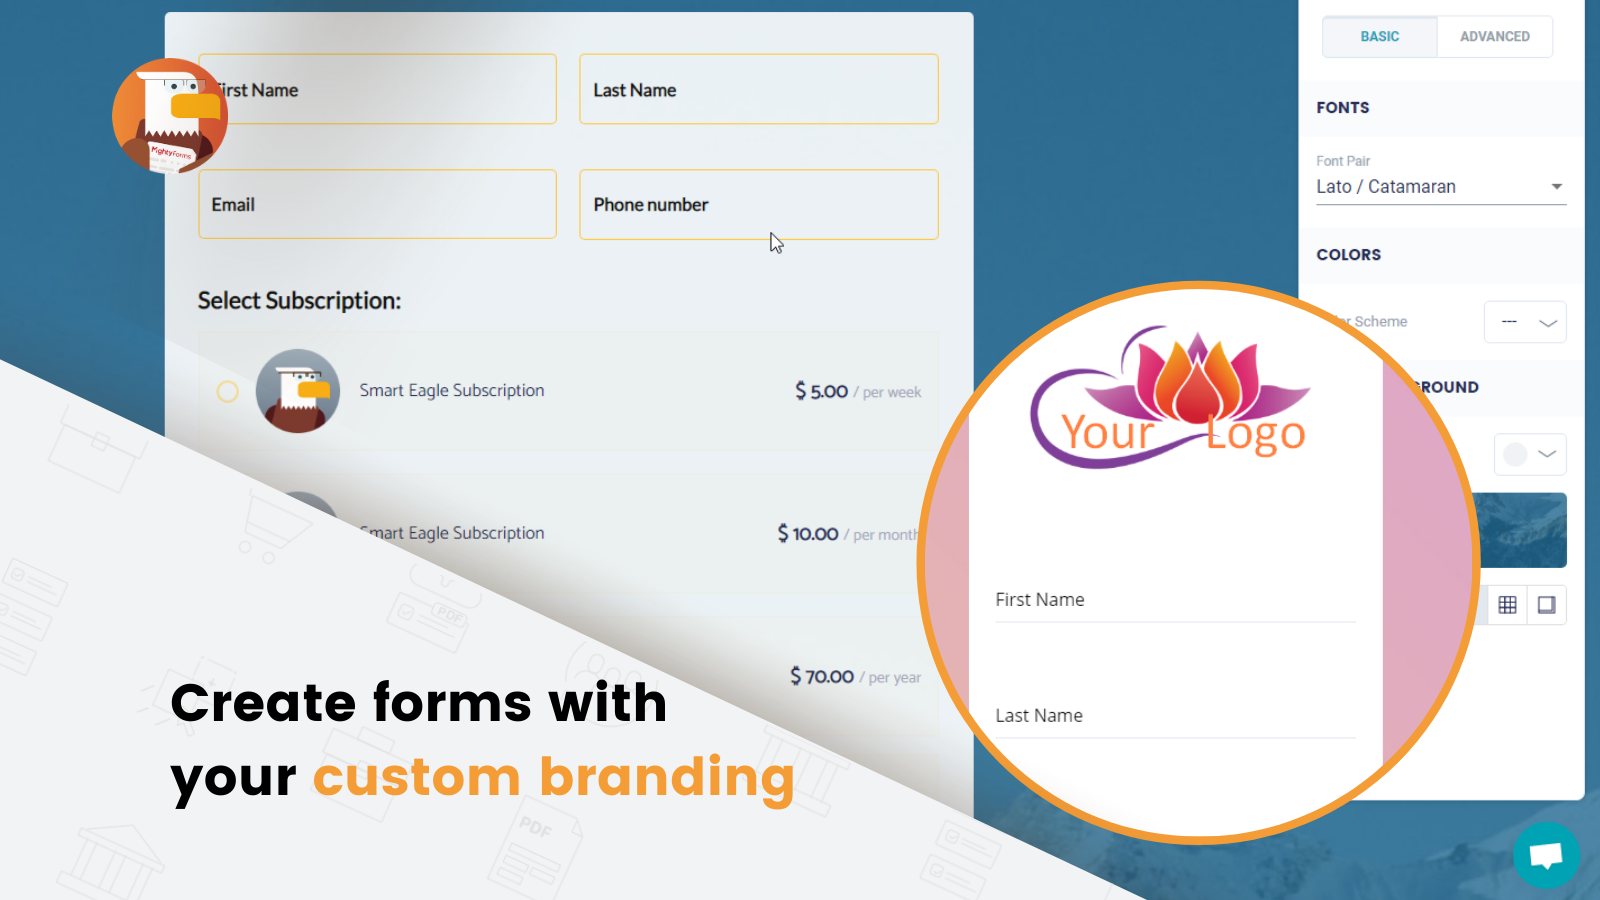 Drag & drop fields, customize your forms to match your branding